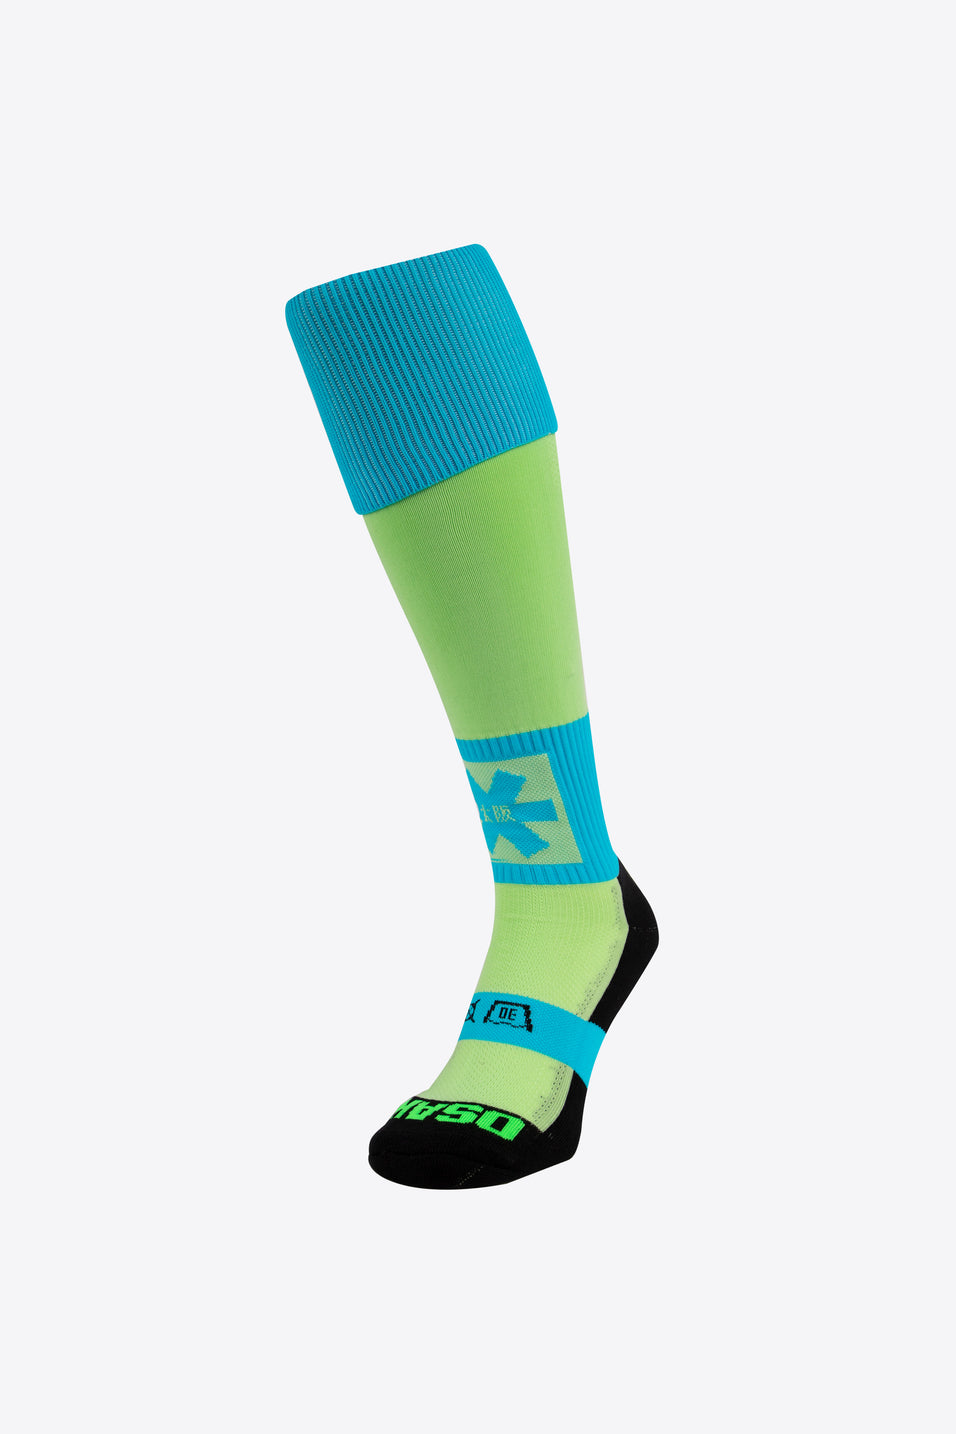 SOX - Neo Mint / Vivid Turquoise